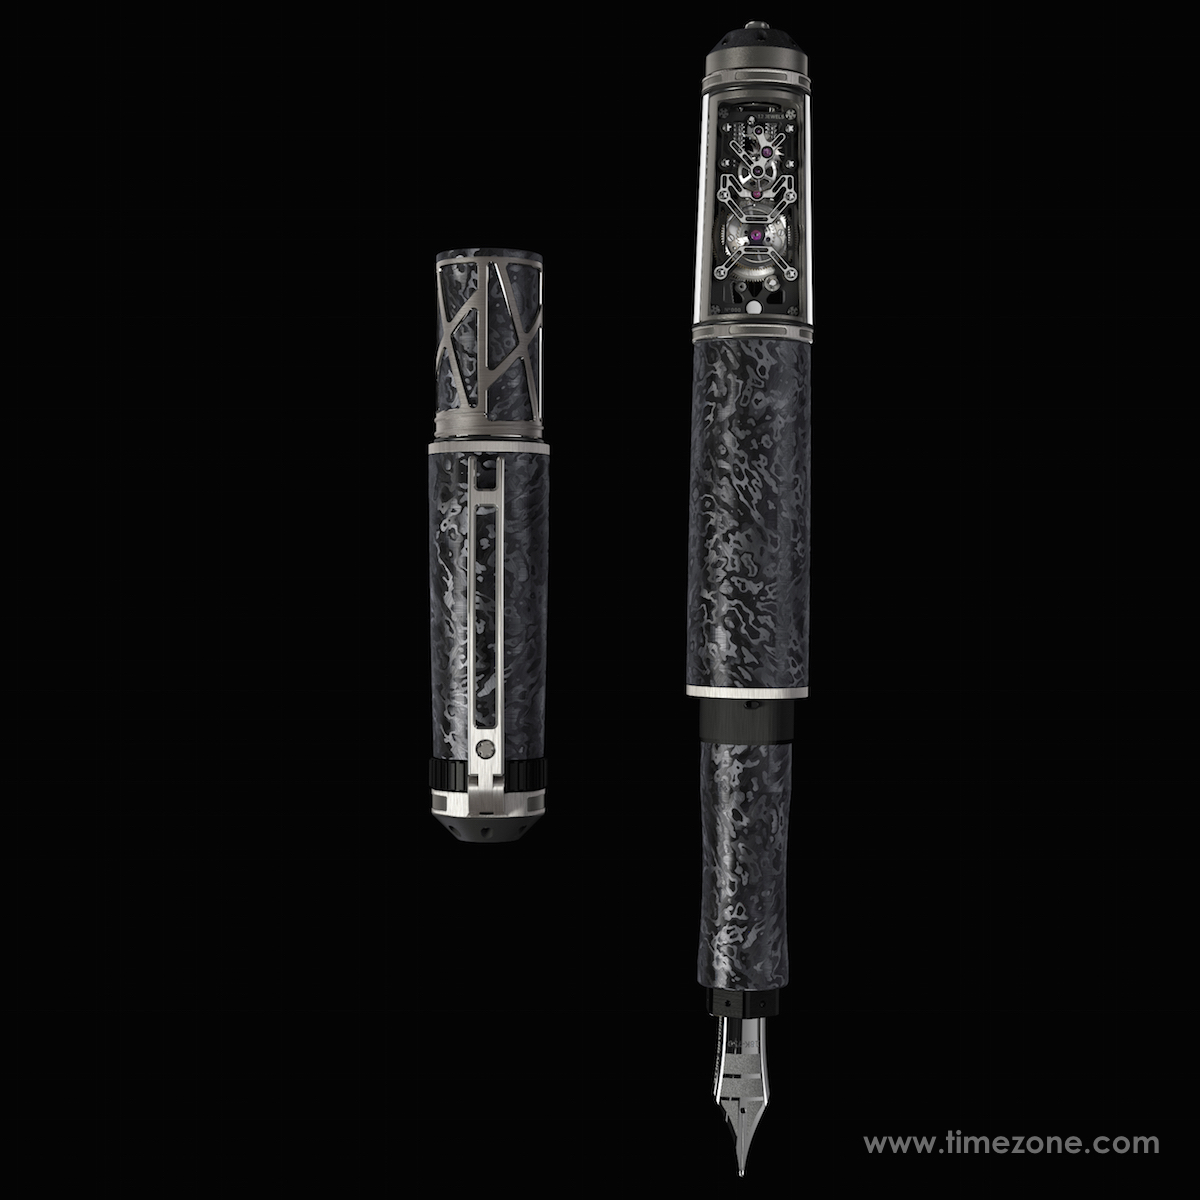 Richard Mille Mechanical Fountain Pen, Richard Mille RMS, Richard Mille pen, Richard Mille fountain pen